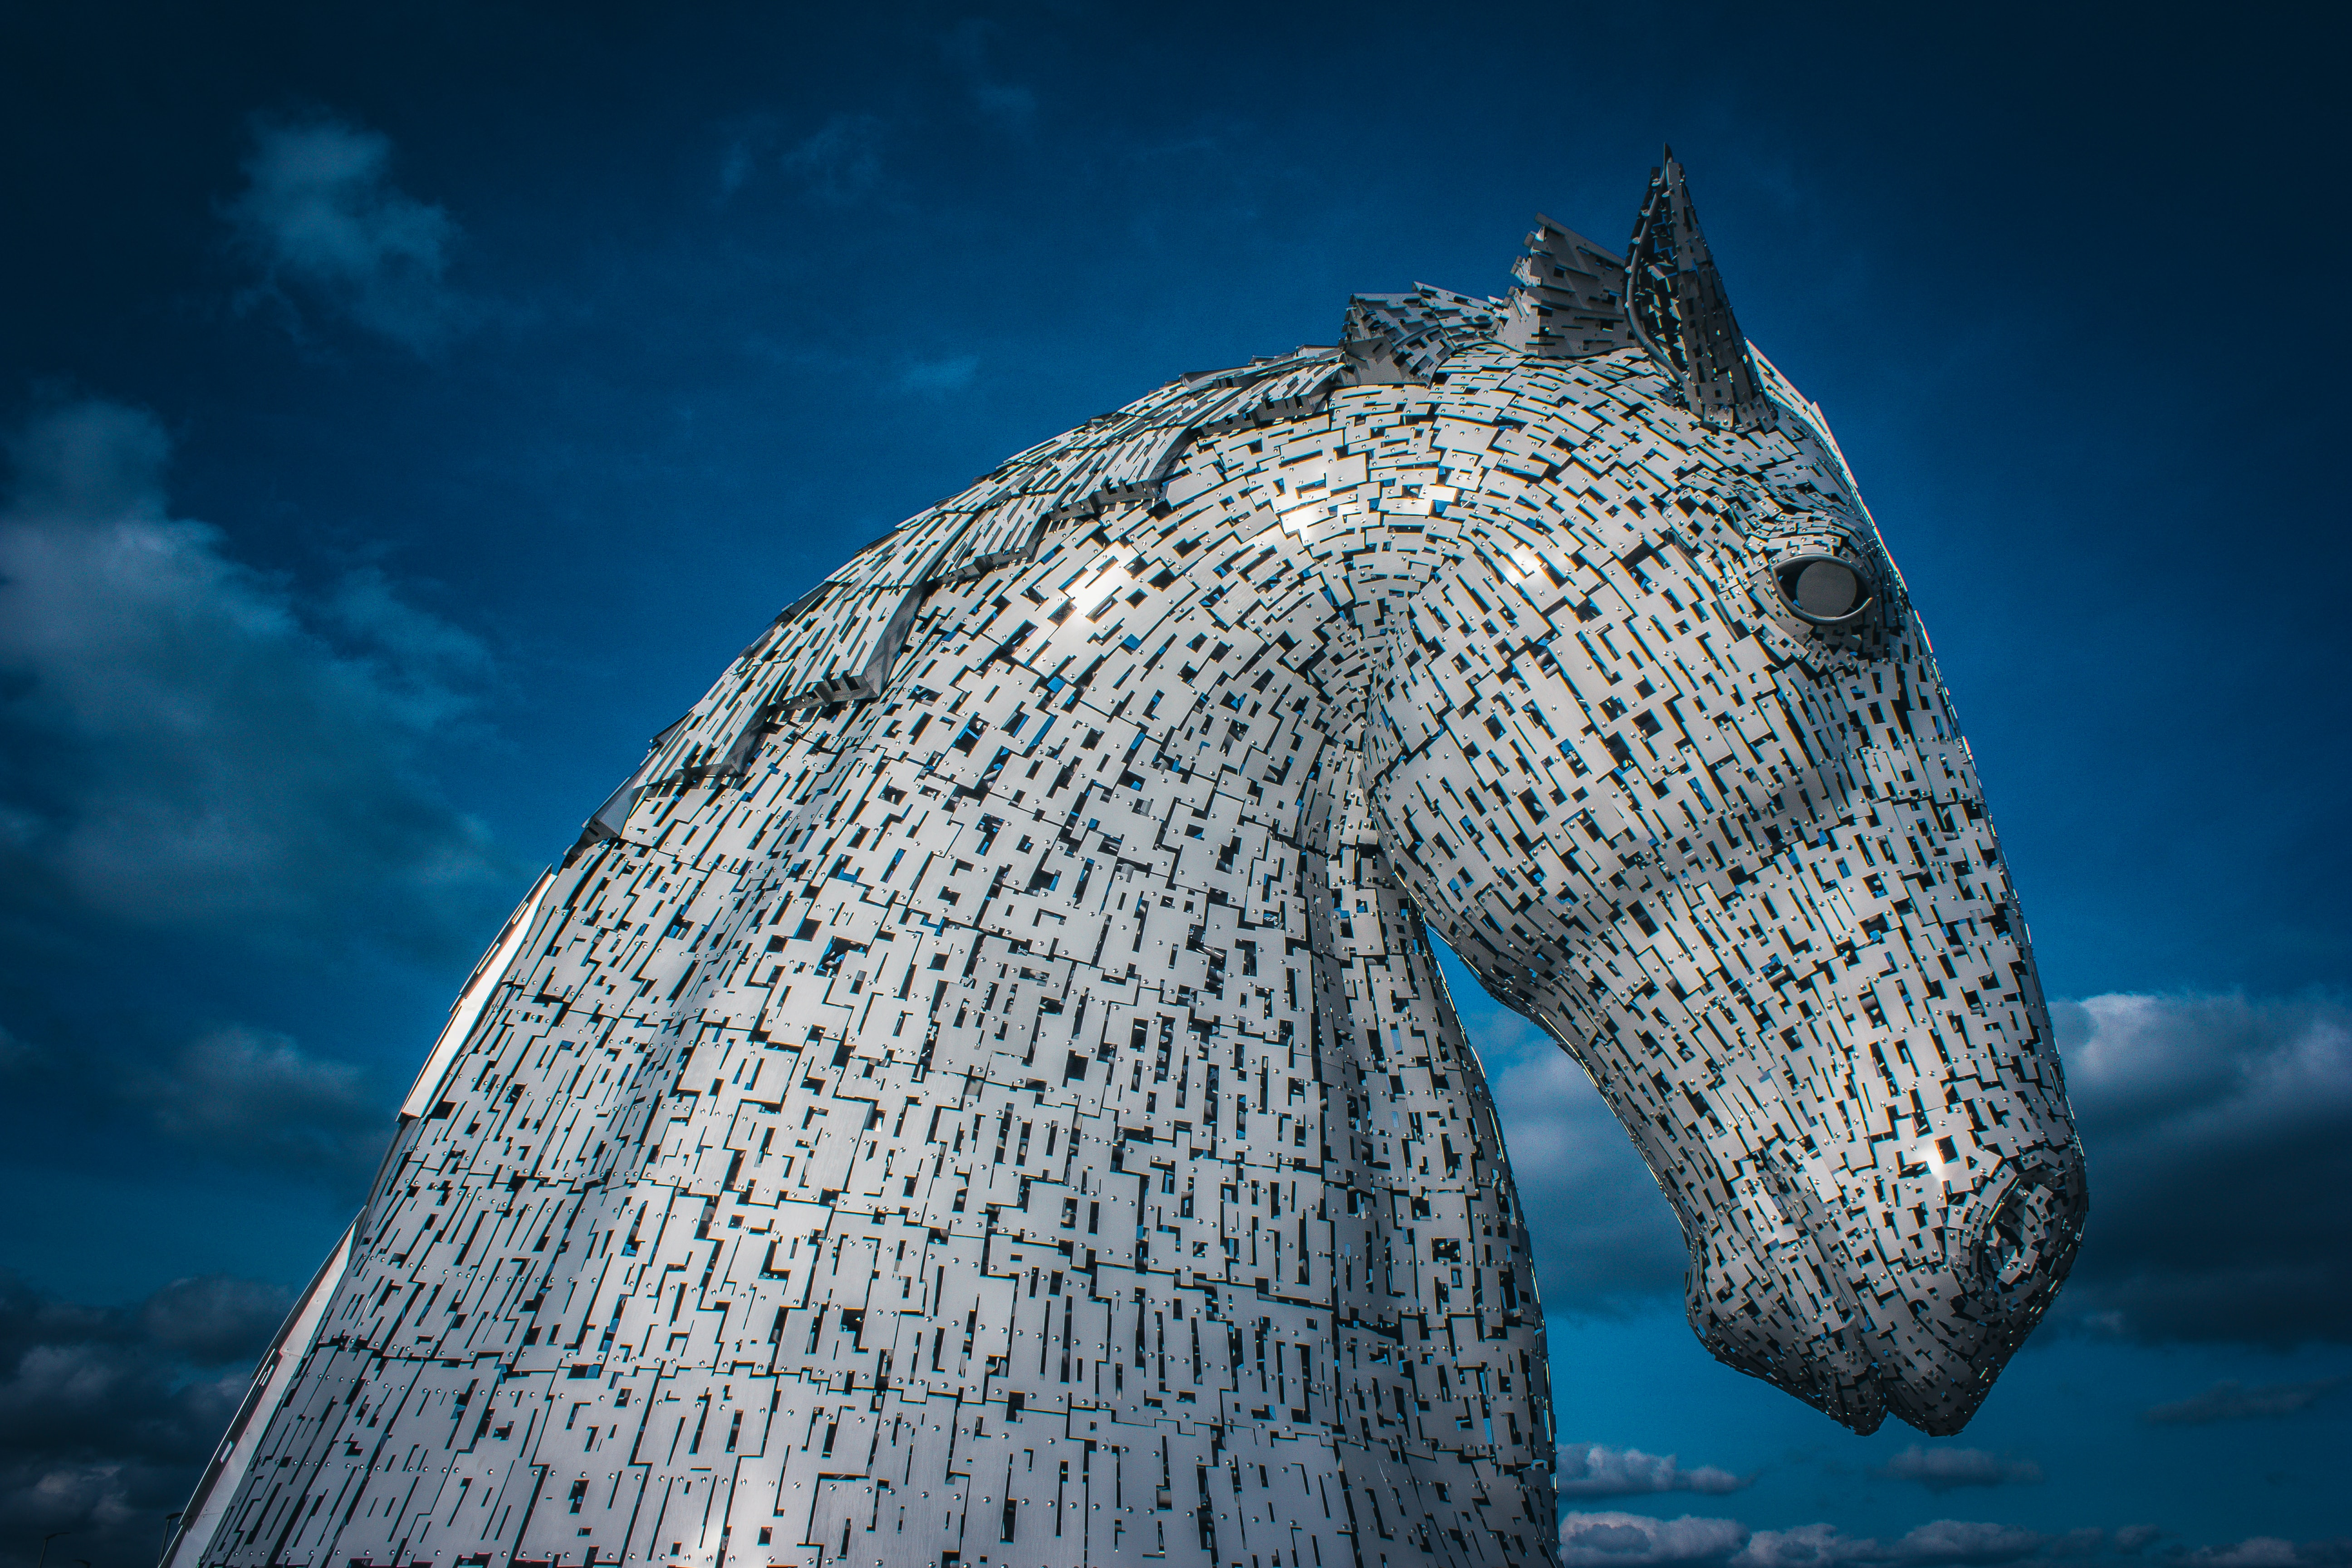 metal horse sculpture against blue sky